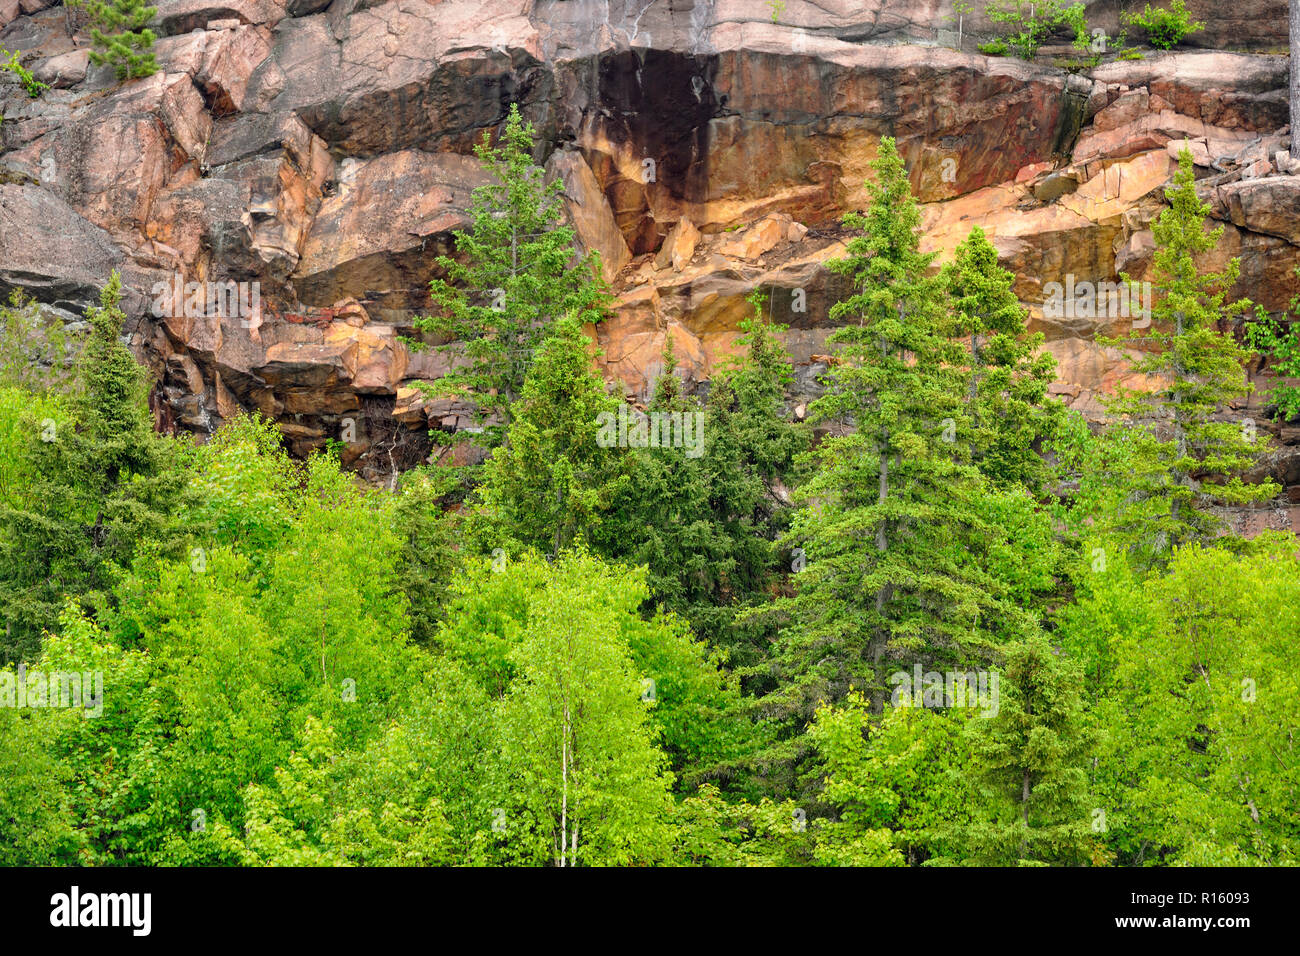 Aspens and spruces at the base of a cliff, Wanup, Ontario, Canada - Stock Image